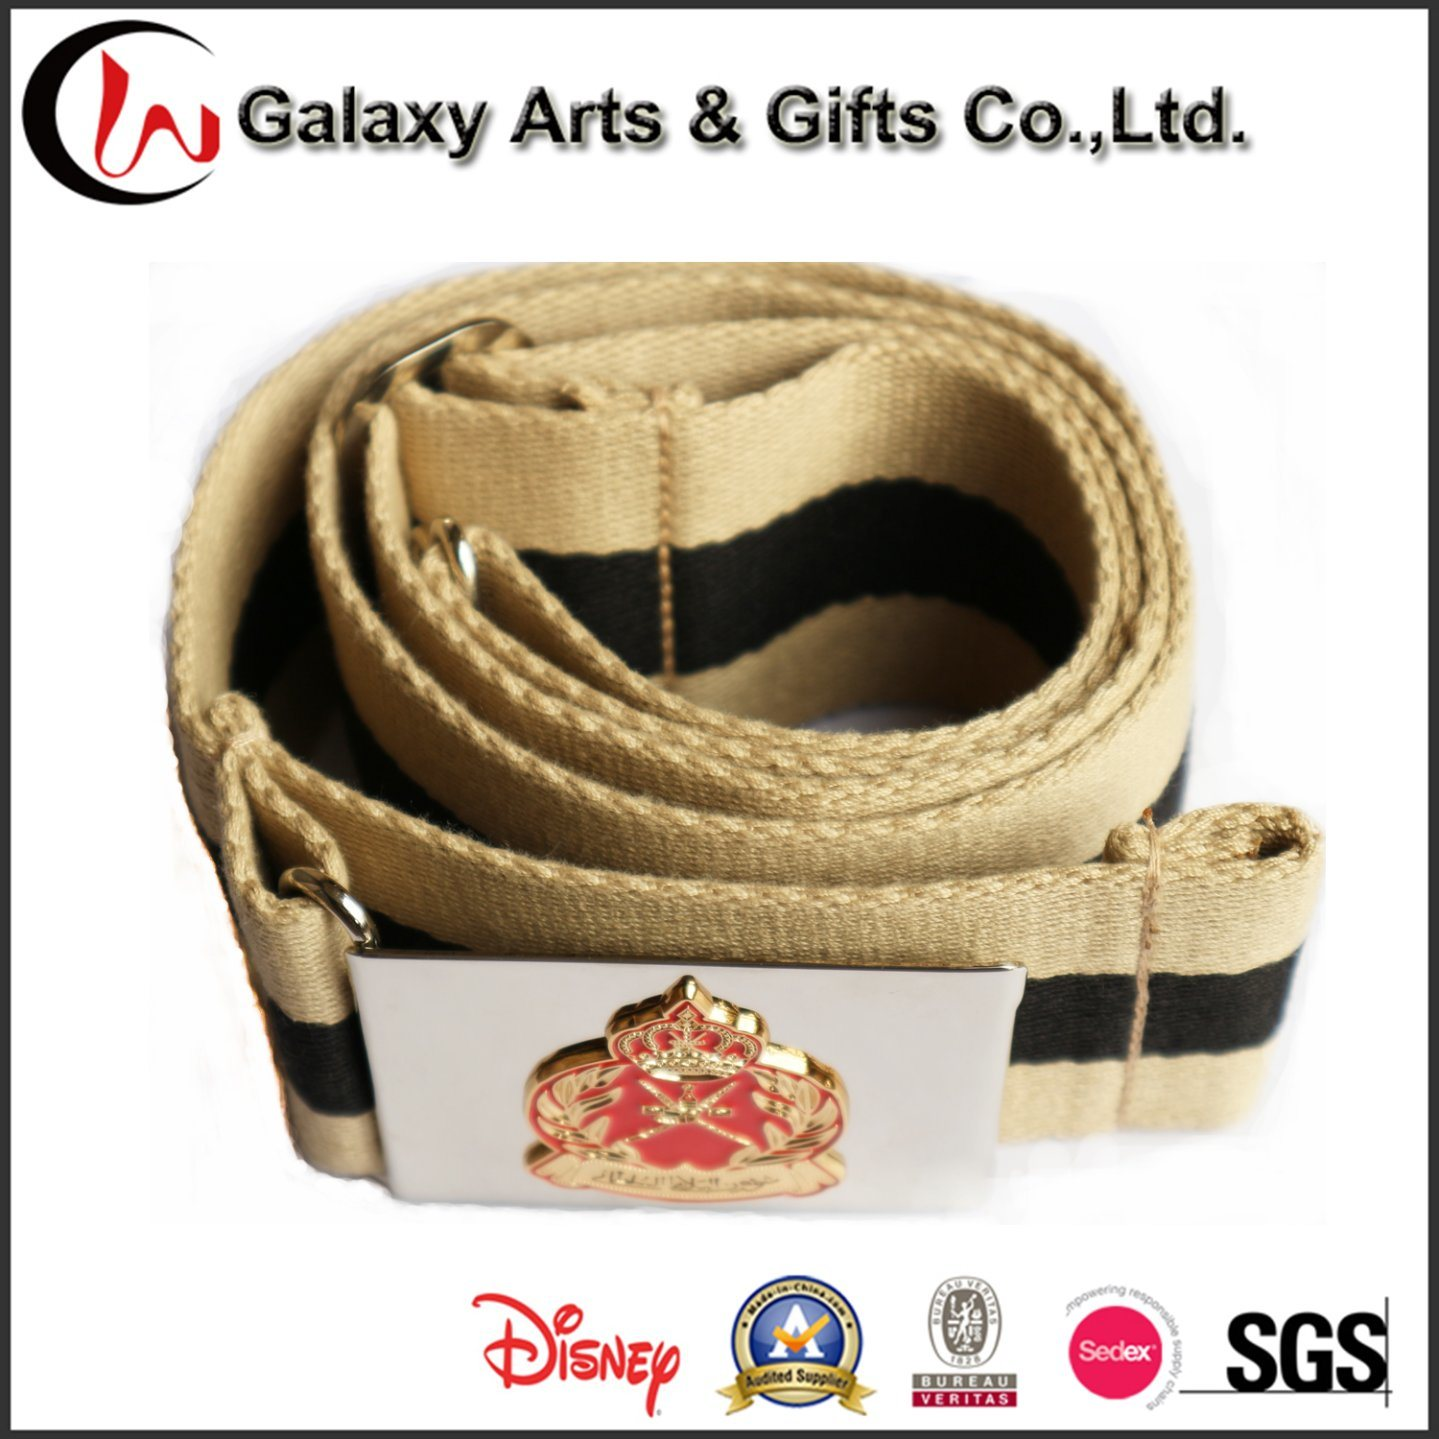 Garment Accessories of Military Cotton Webbing Man′s Waist safety Metal Belt with Buckle Belt